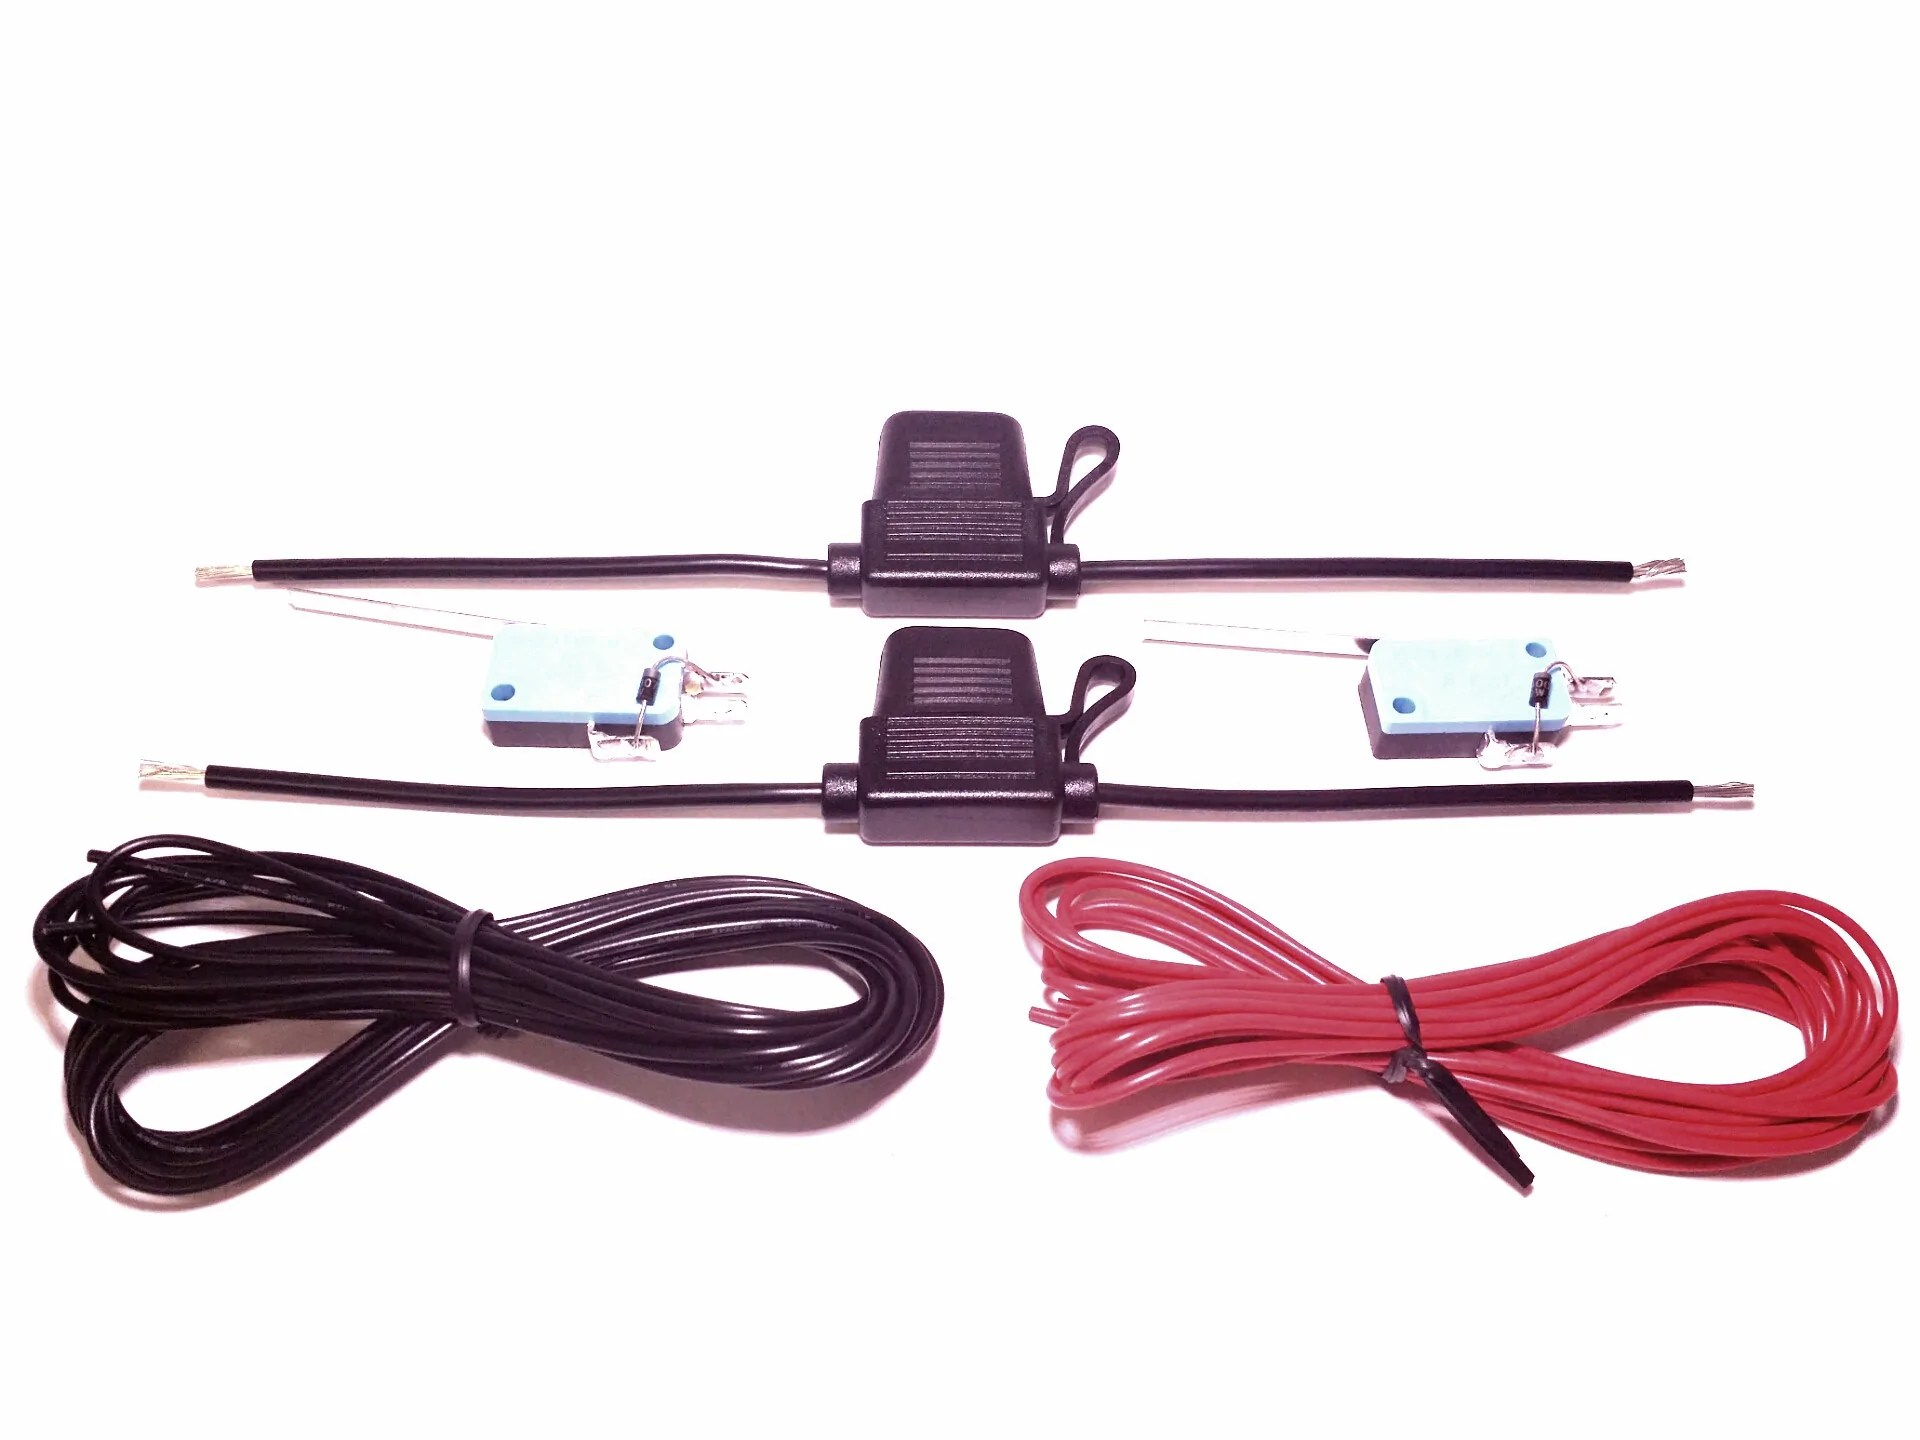 external limit switch kit for actuators linear actuator wiring [ 1920 x 1440 Pixel ]